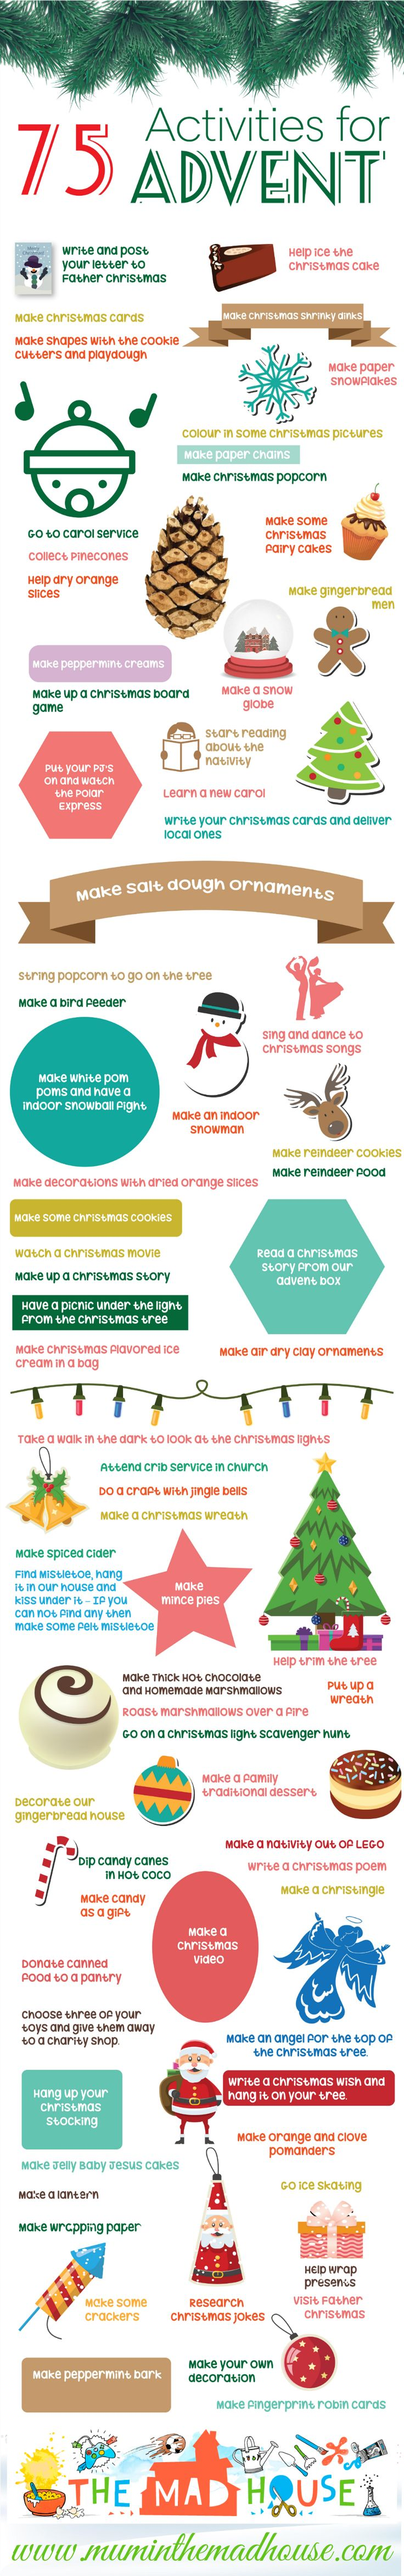 Christmas crafts and advent activities for kids